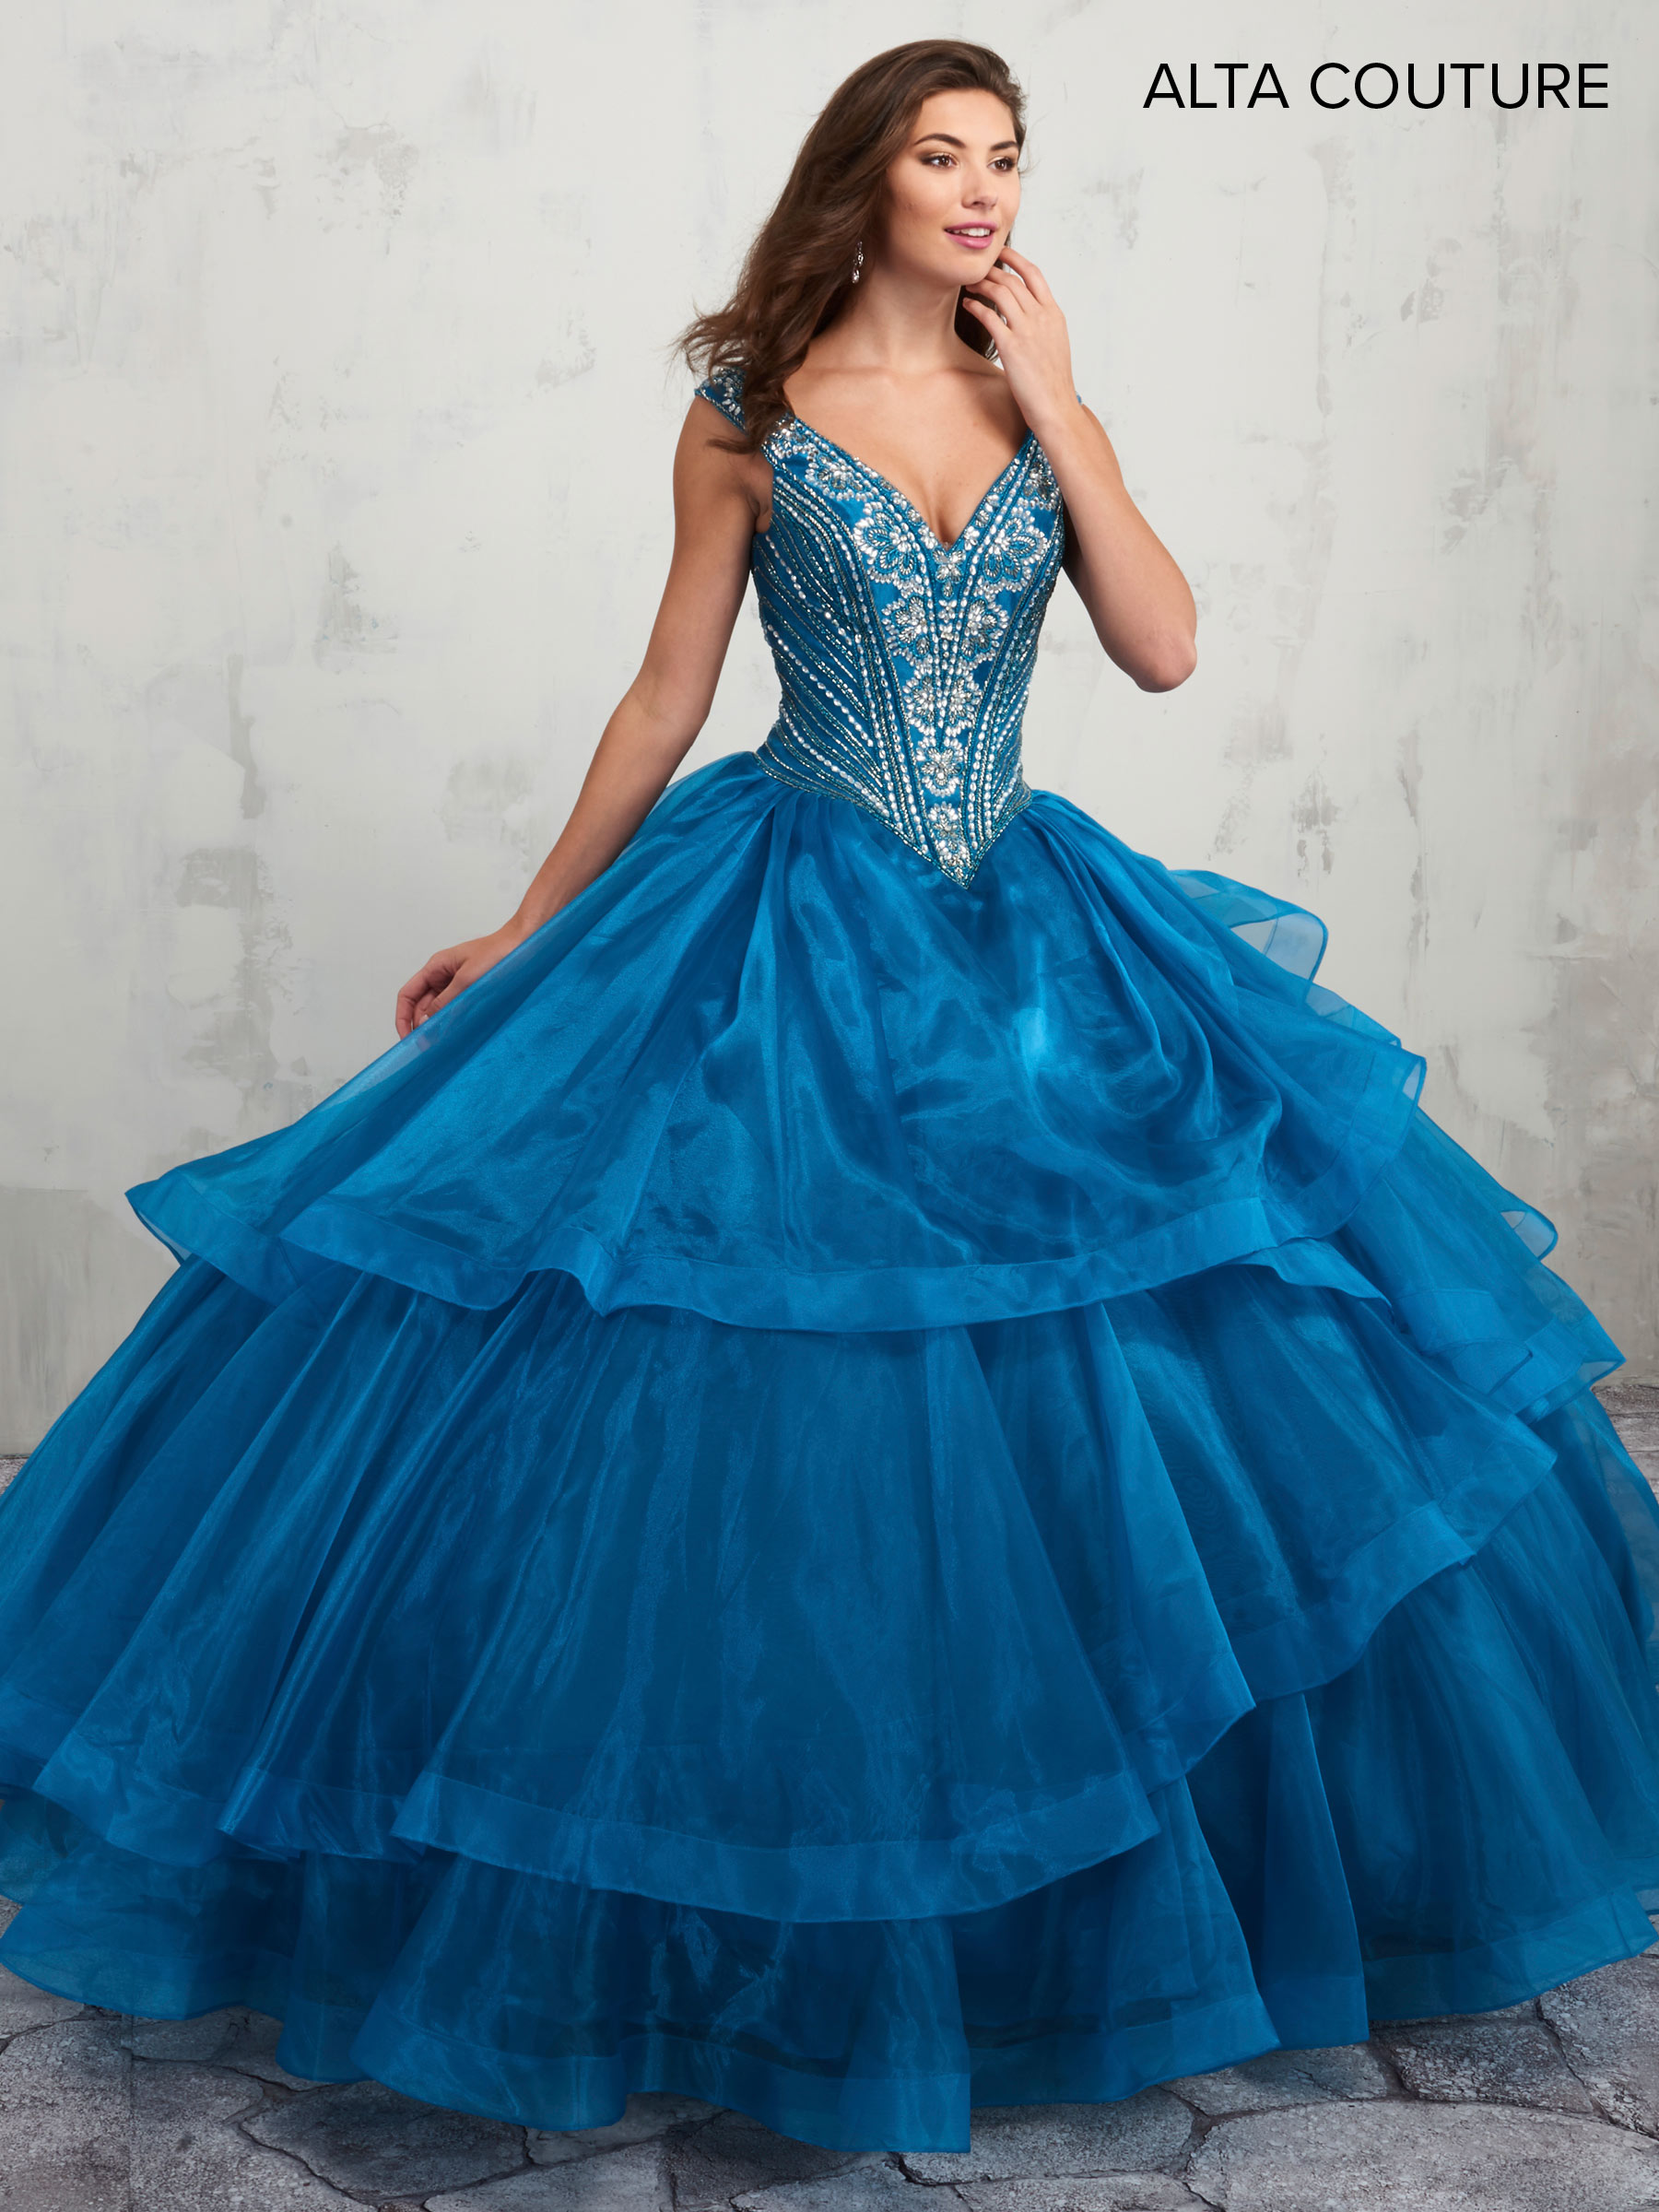 Quinceanera Couture Dresses | Alta Couture | Style - MQ3005